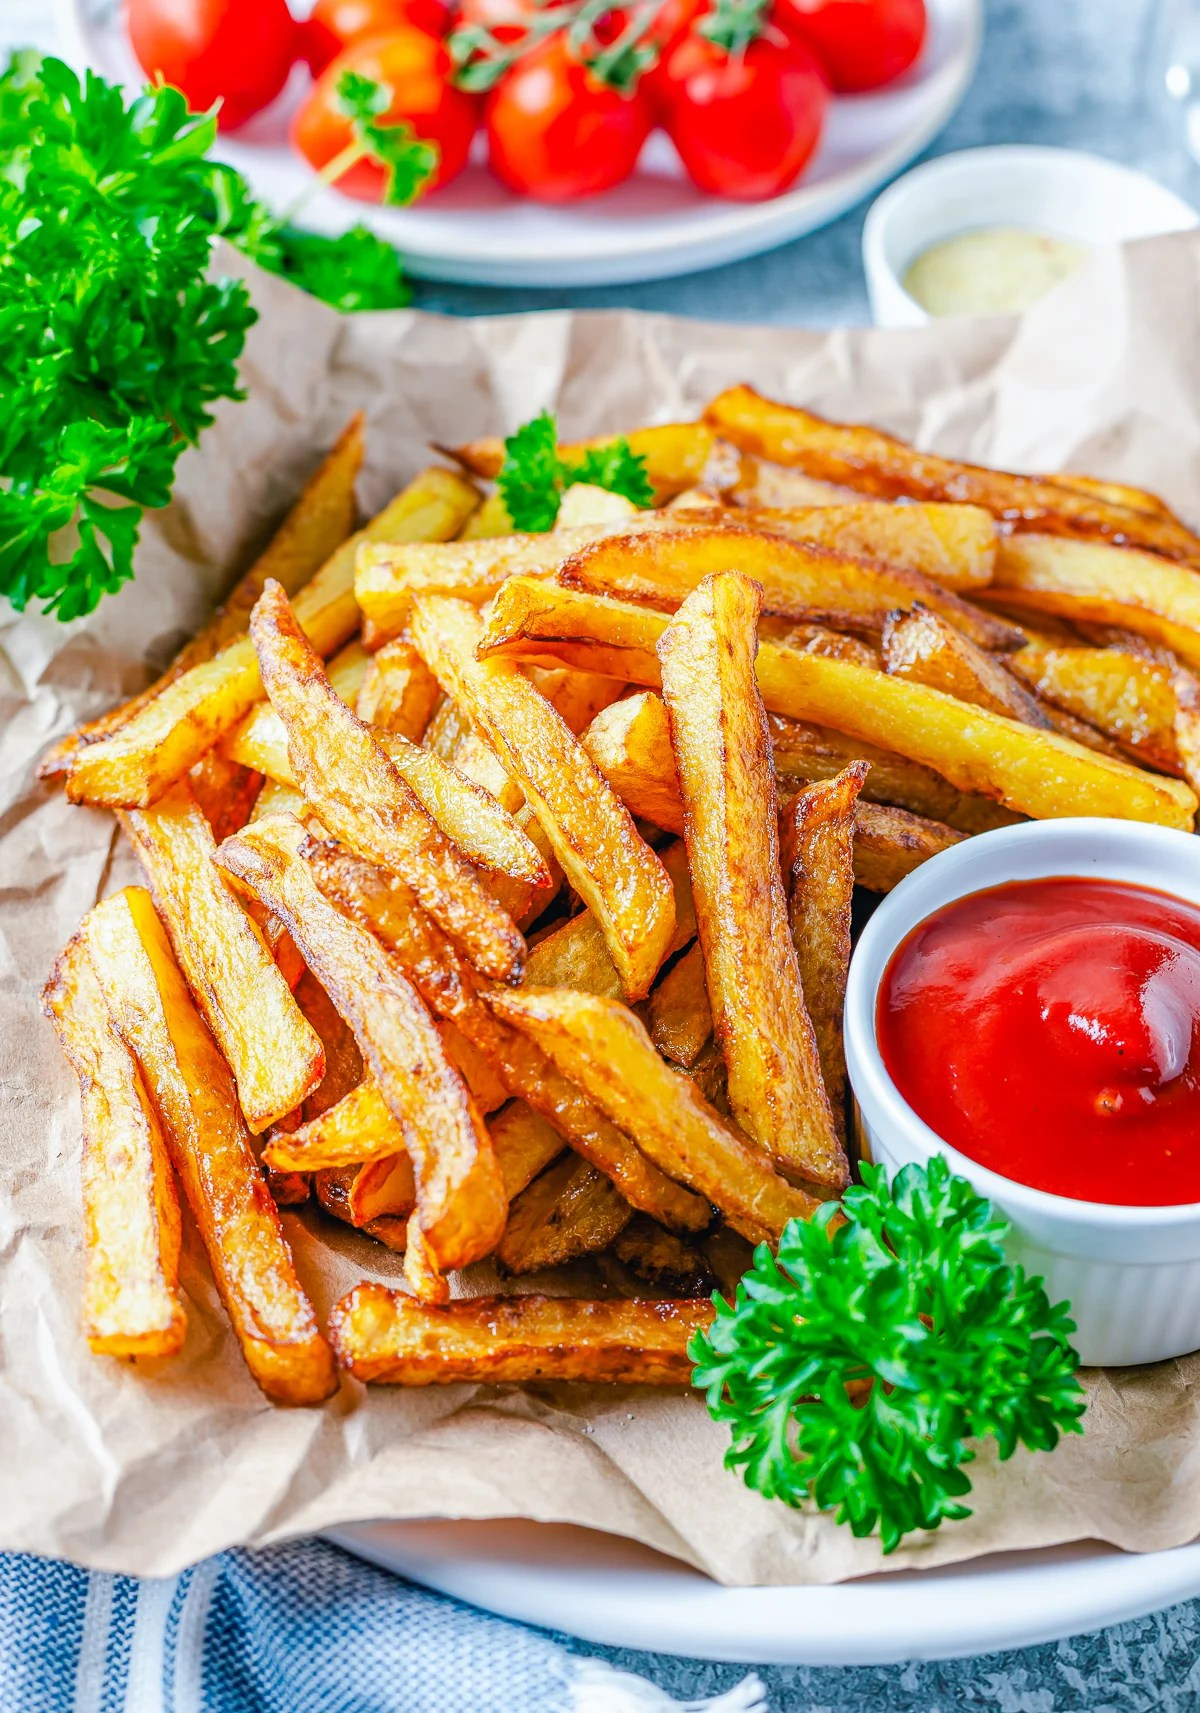 Side view of plated Homemade French Fries with ketchup and parsley.